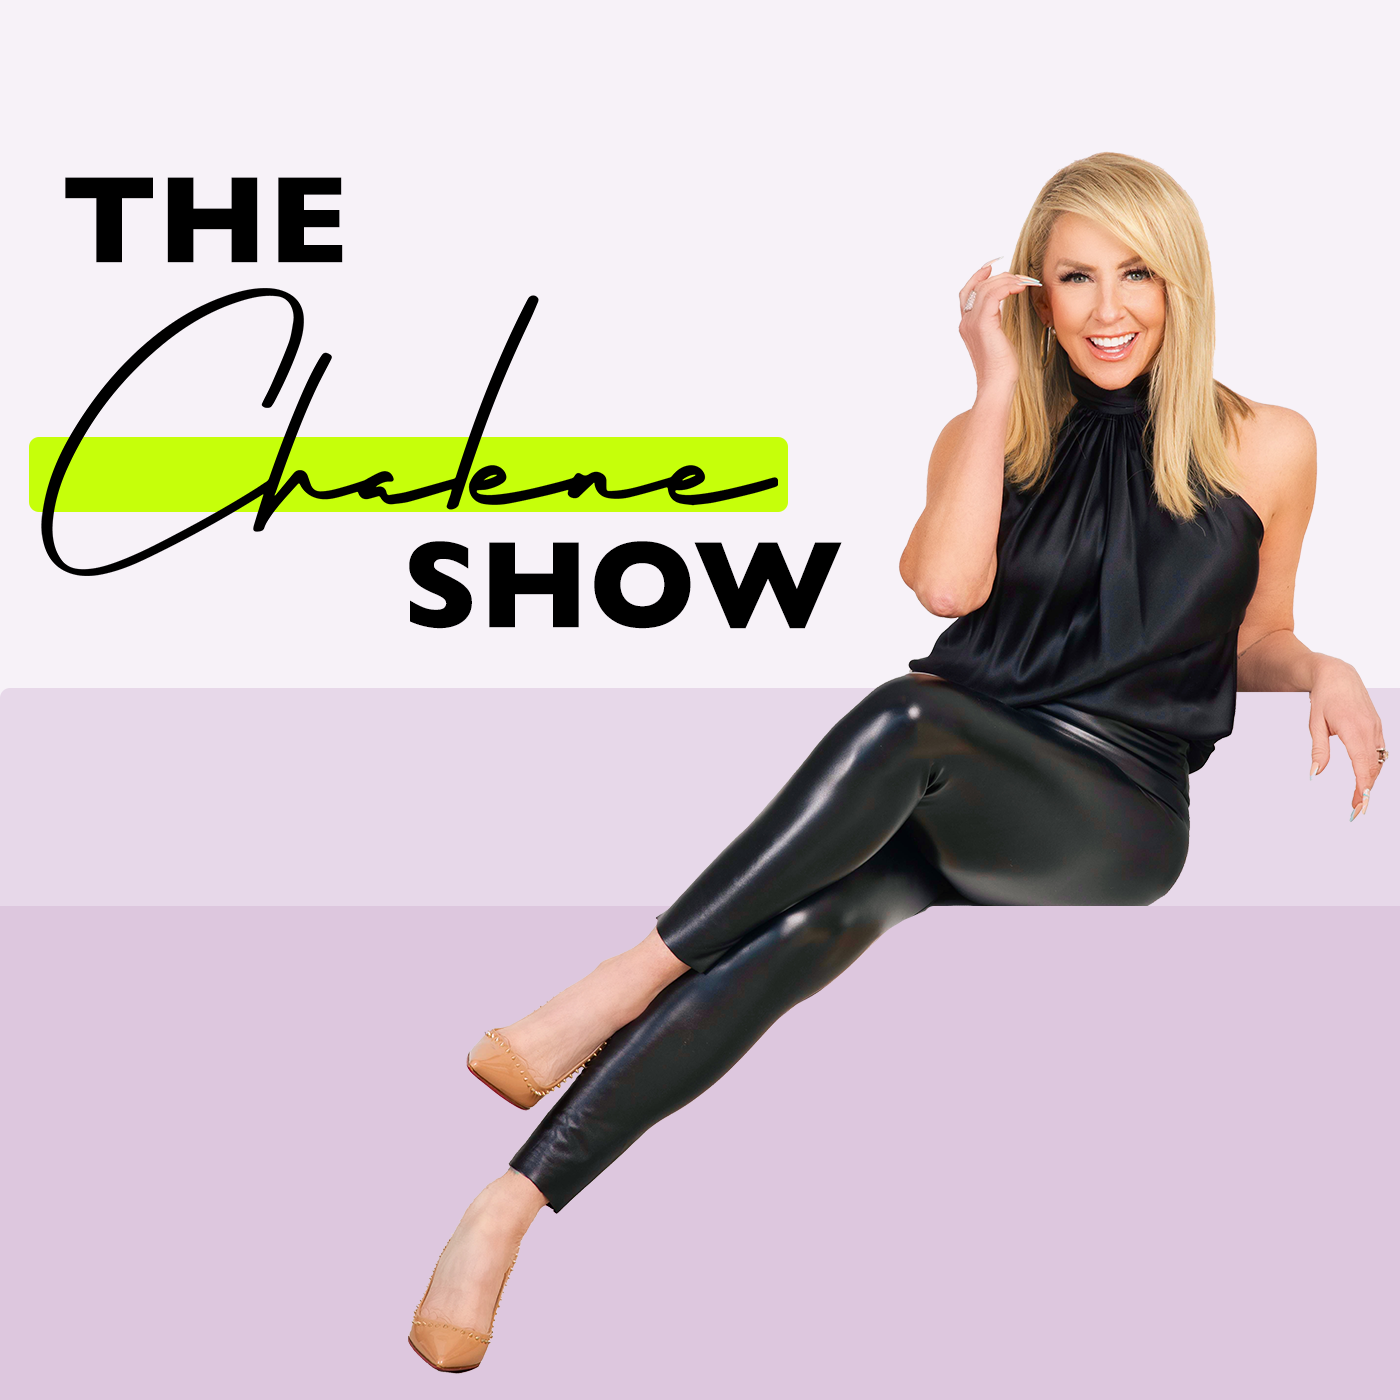 The Chalene Show | Diet, Fitness and Goal Mastery Strategies